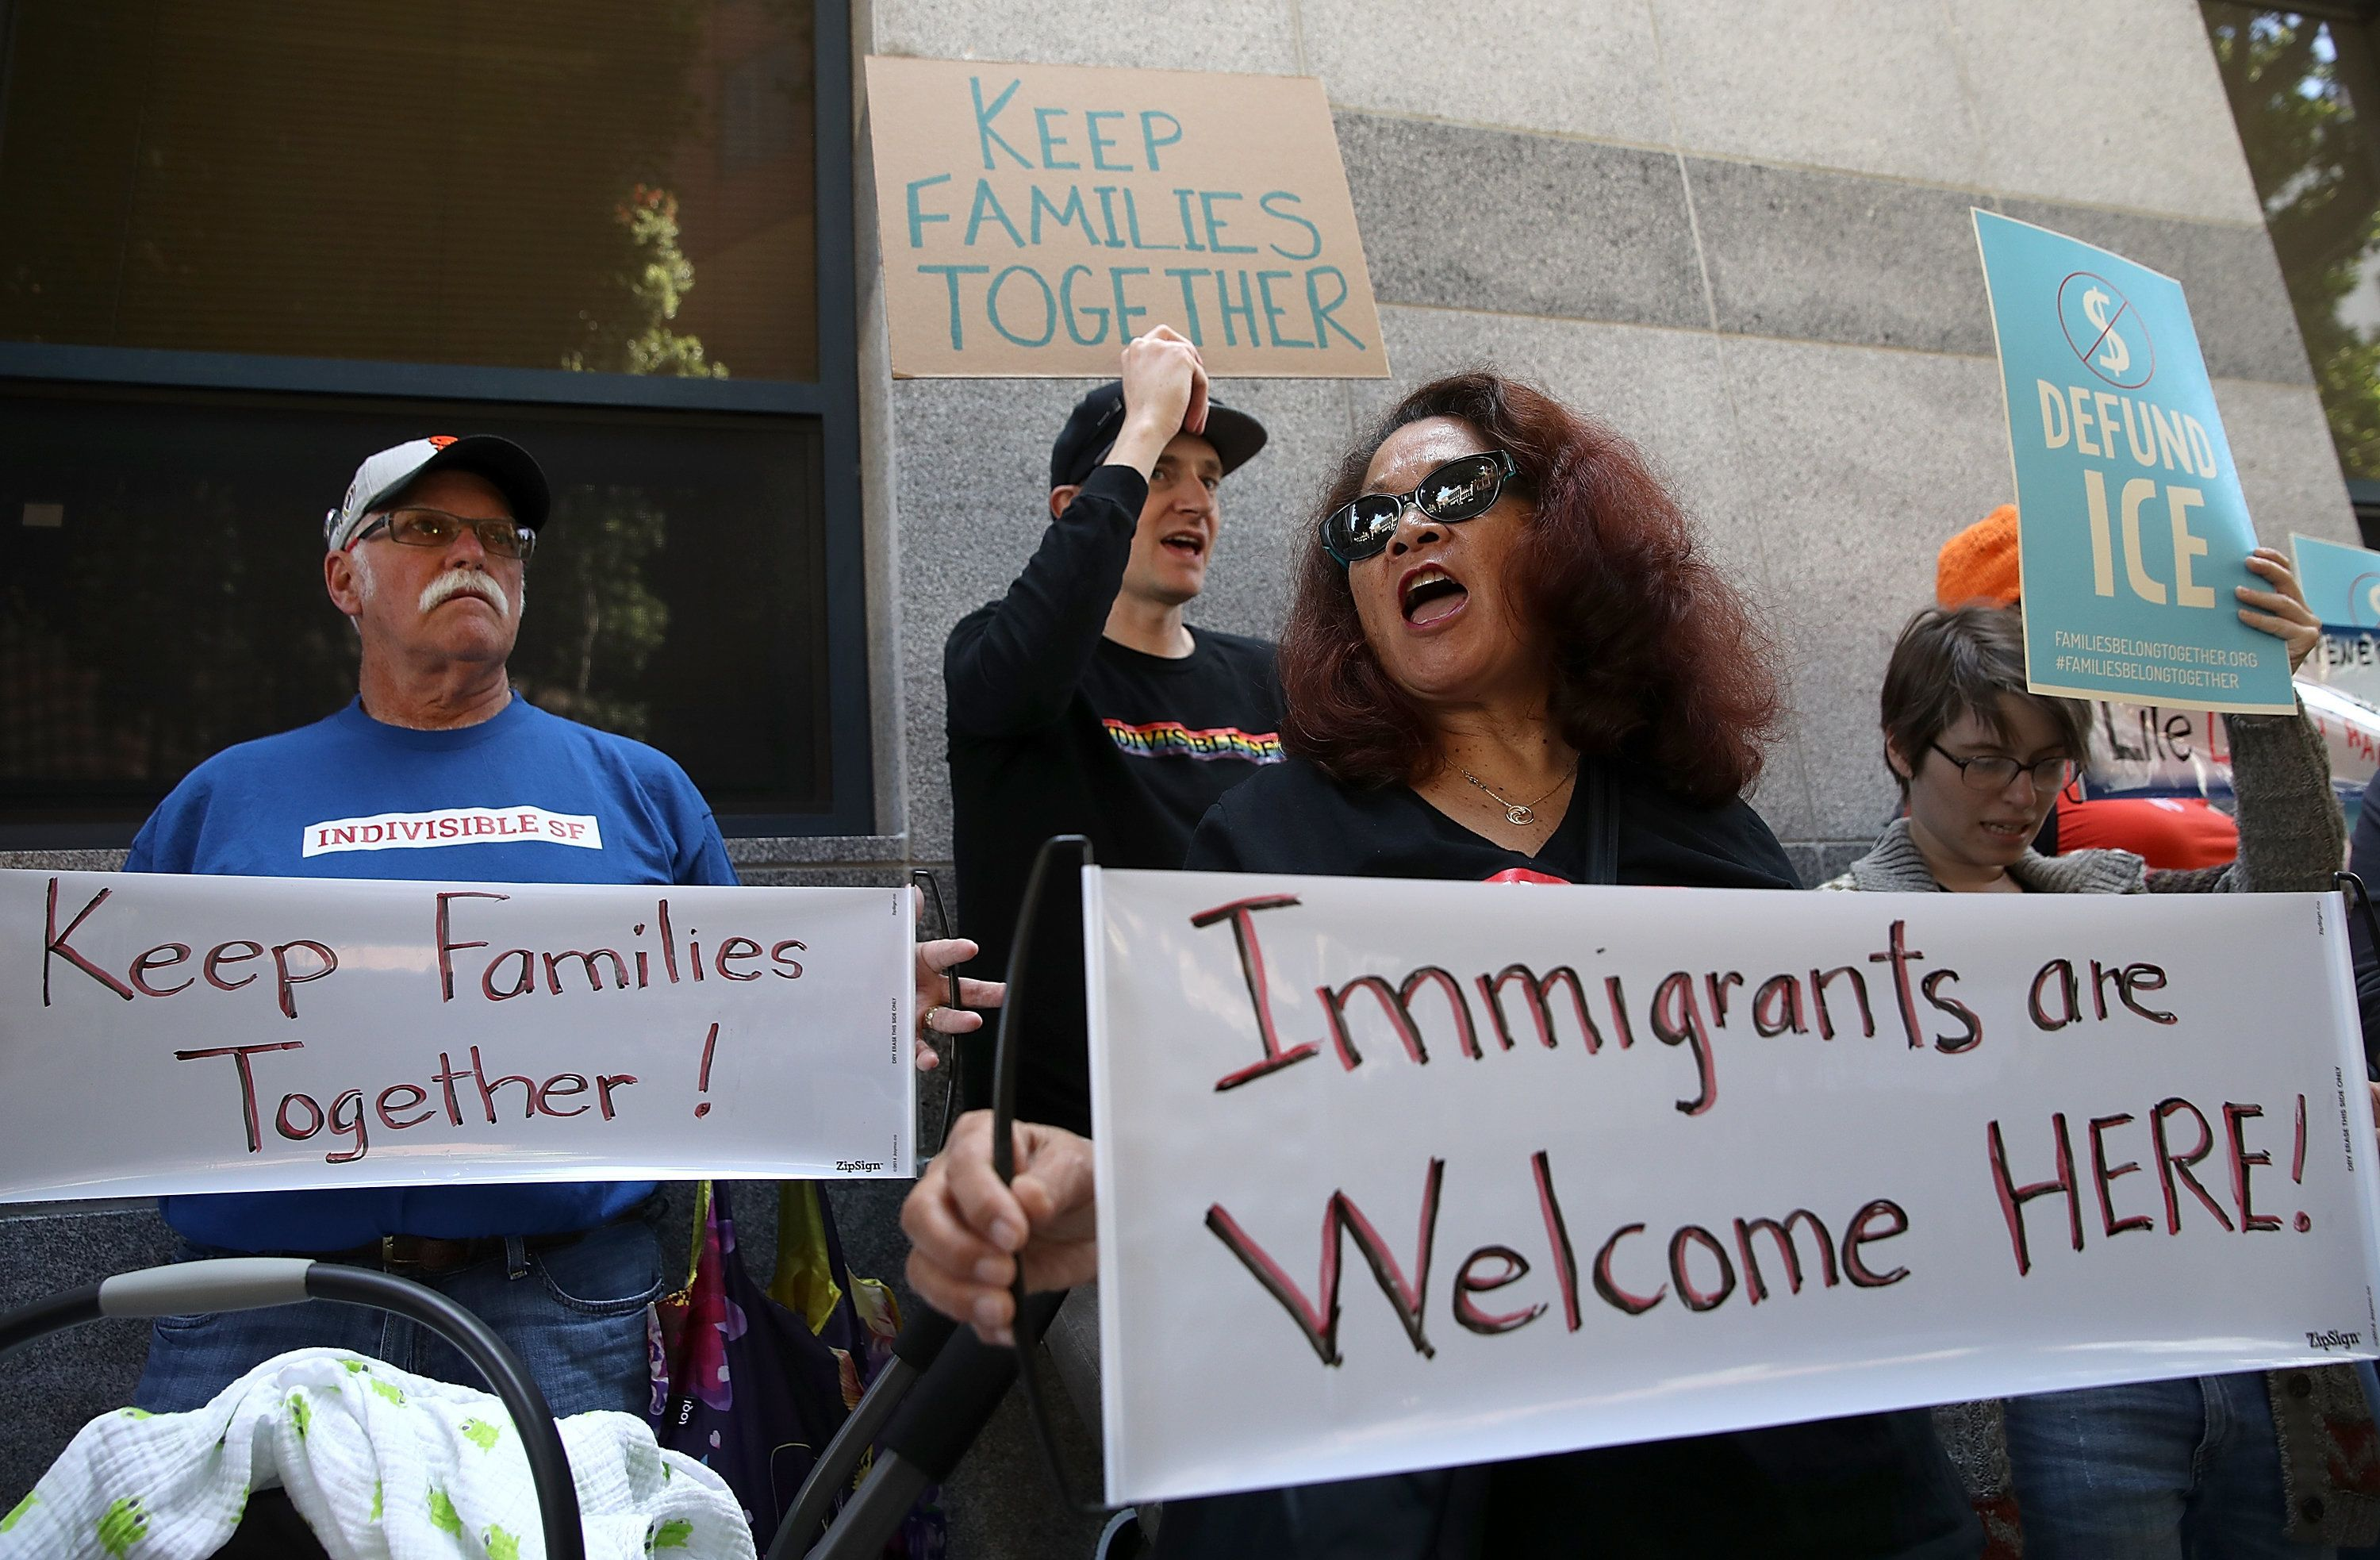 SAN FRANCISCO, CA - JUNE 01:  Protesters hold signs during a demonstration outside of the San Francisco office of the Immigration and Cutsoms Enforcement (ICE) on the National Day of Action for Children on June 1, 2018 in San Francisco, California. The day of action was held to ask the Trump administration to keep families together as they seek legal status in the U.S. (Photo by Justin Sullivan/Getty Images)